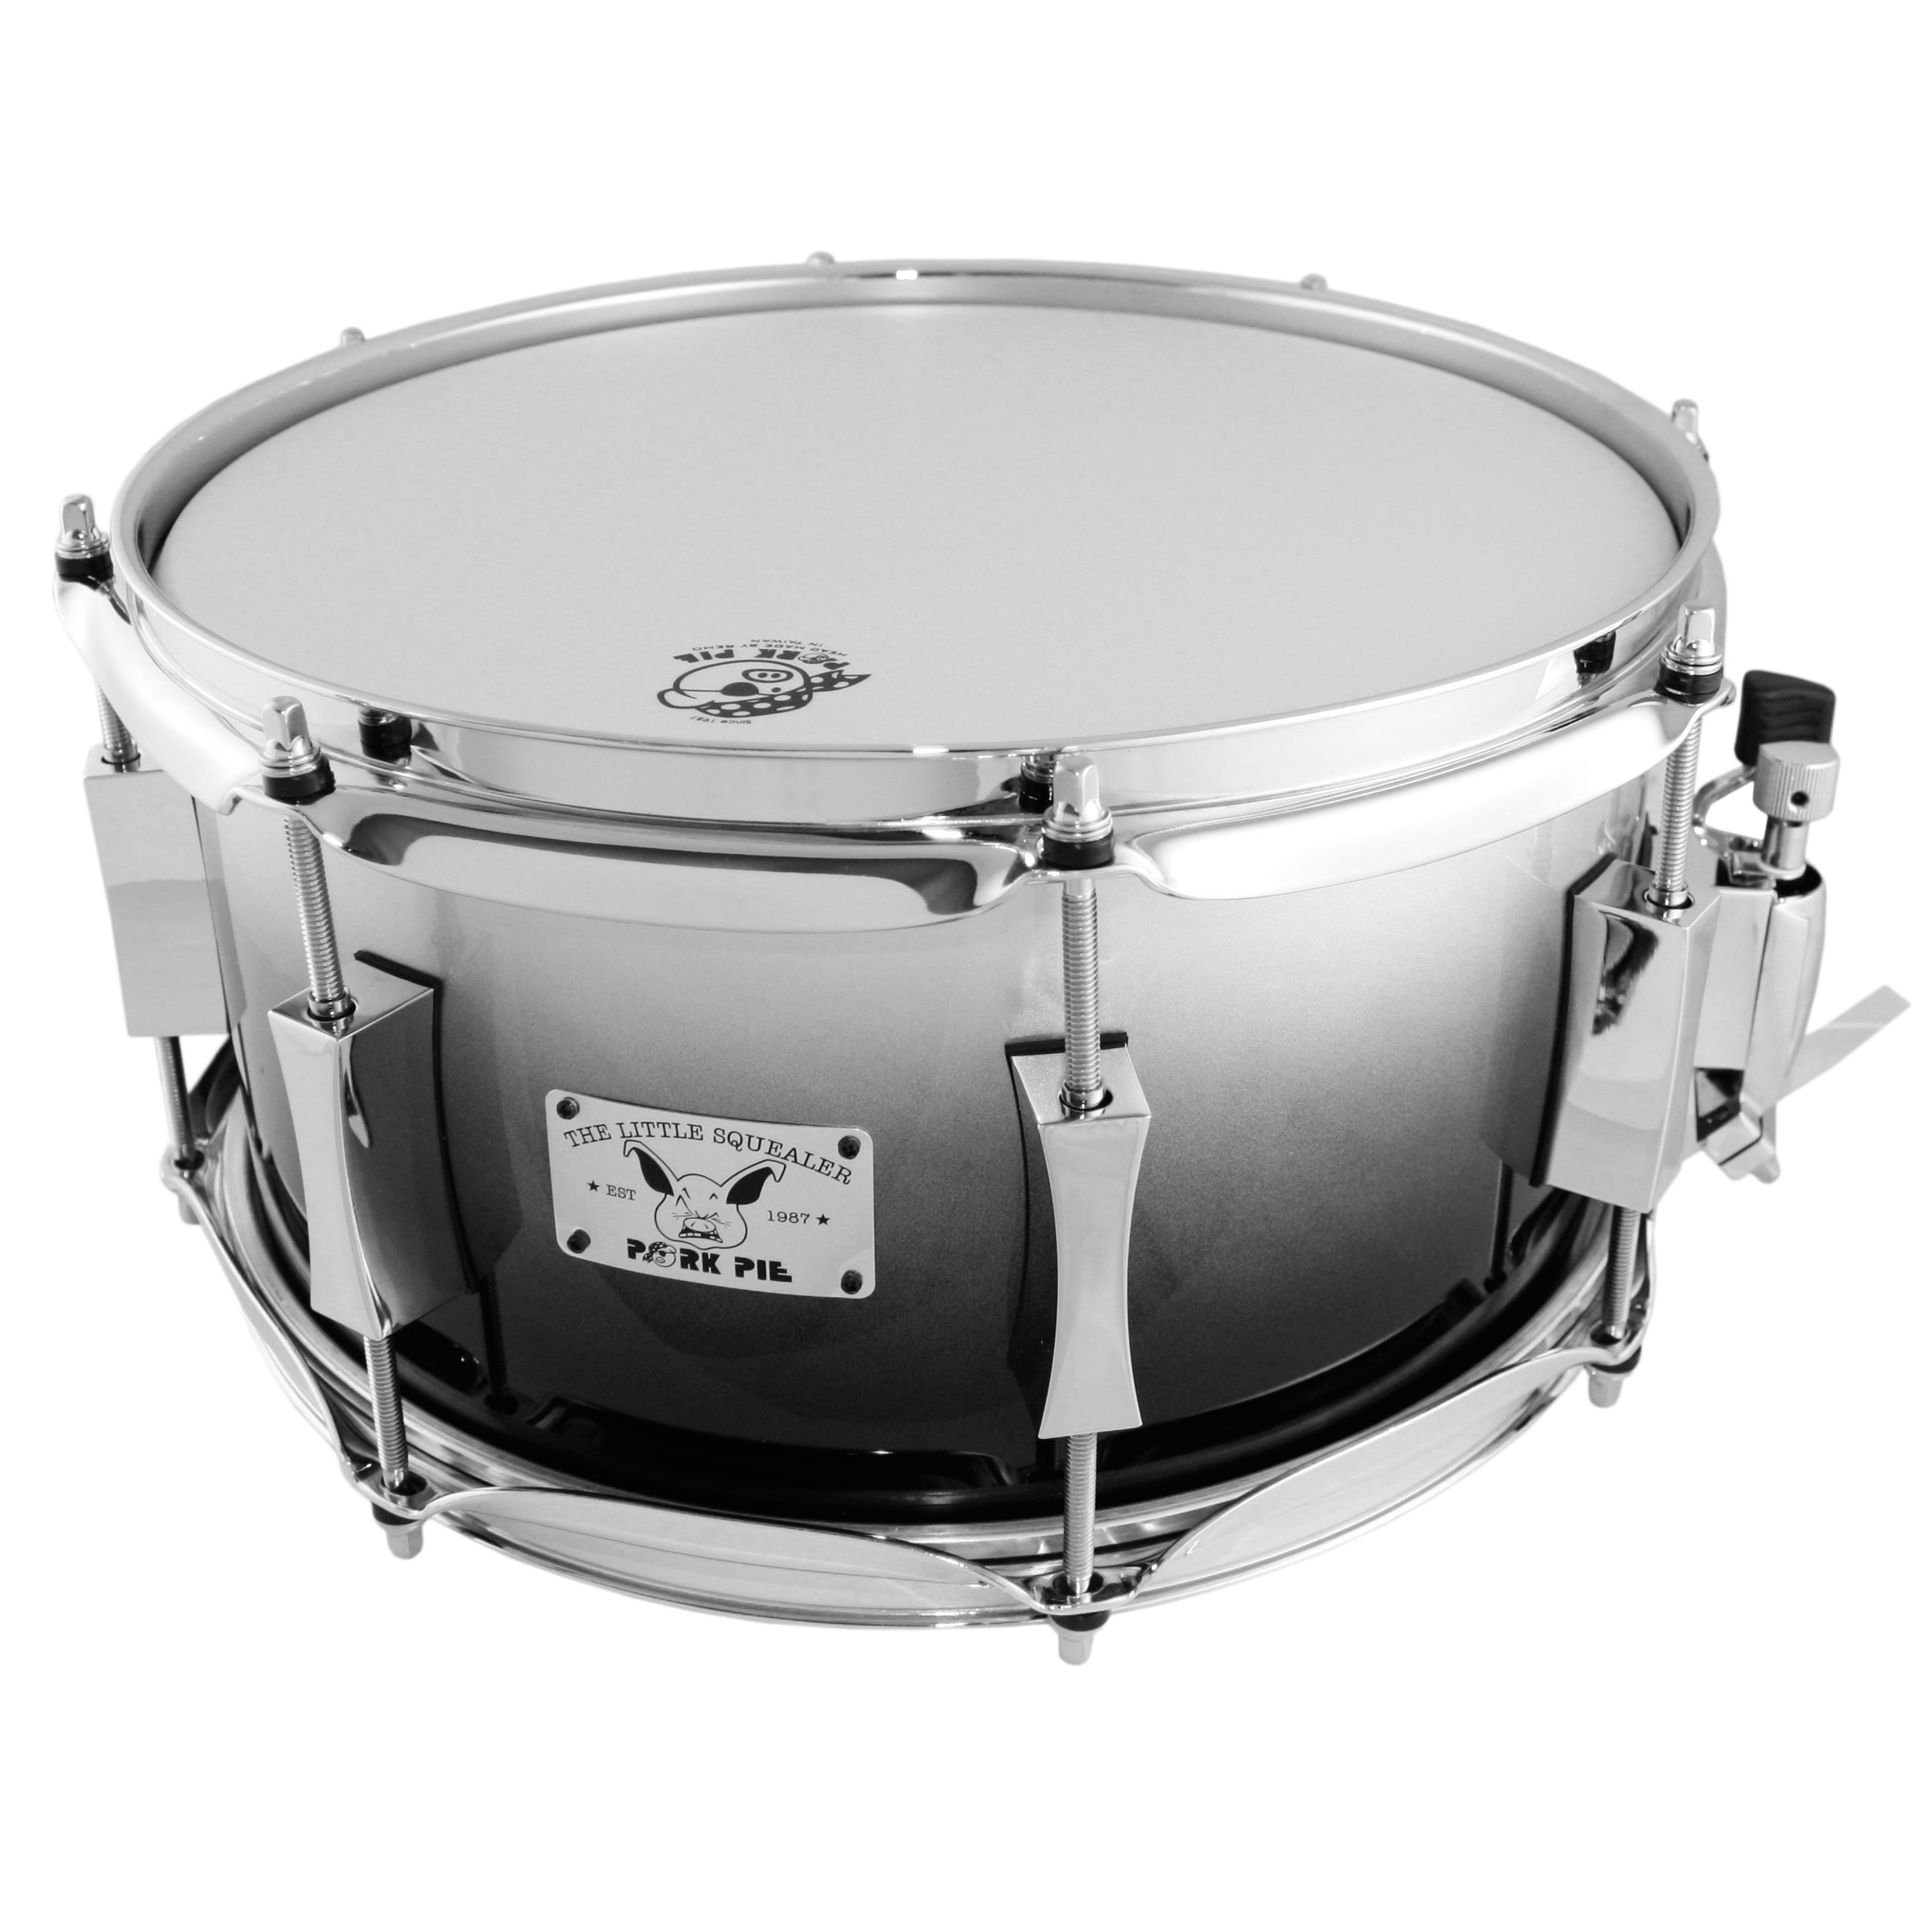 "Pork Pie 6"" x 12"" 8-Ply Maple/Birch Snare Drum in Silver Metallic Fade"